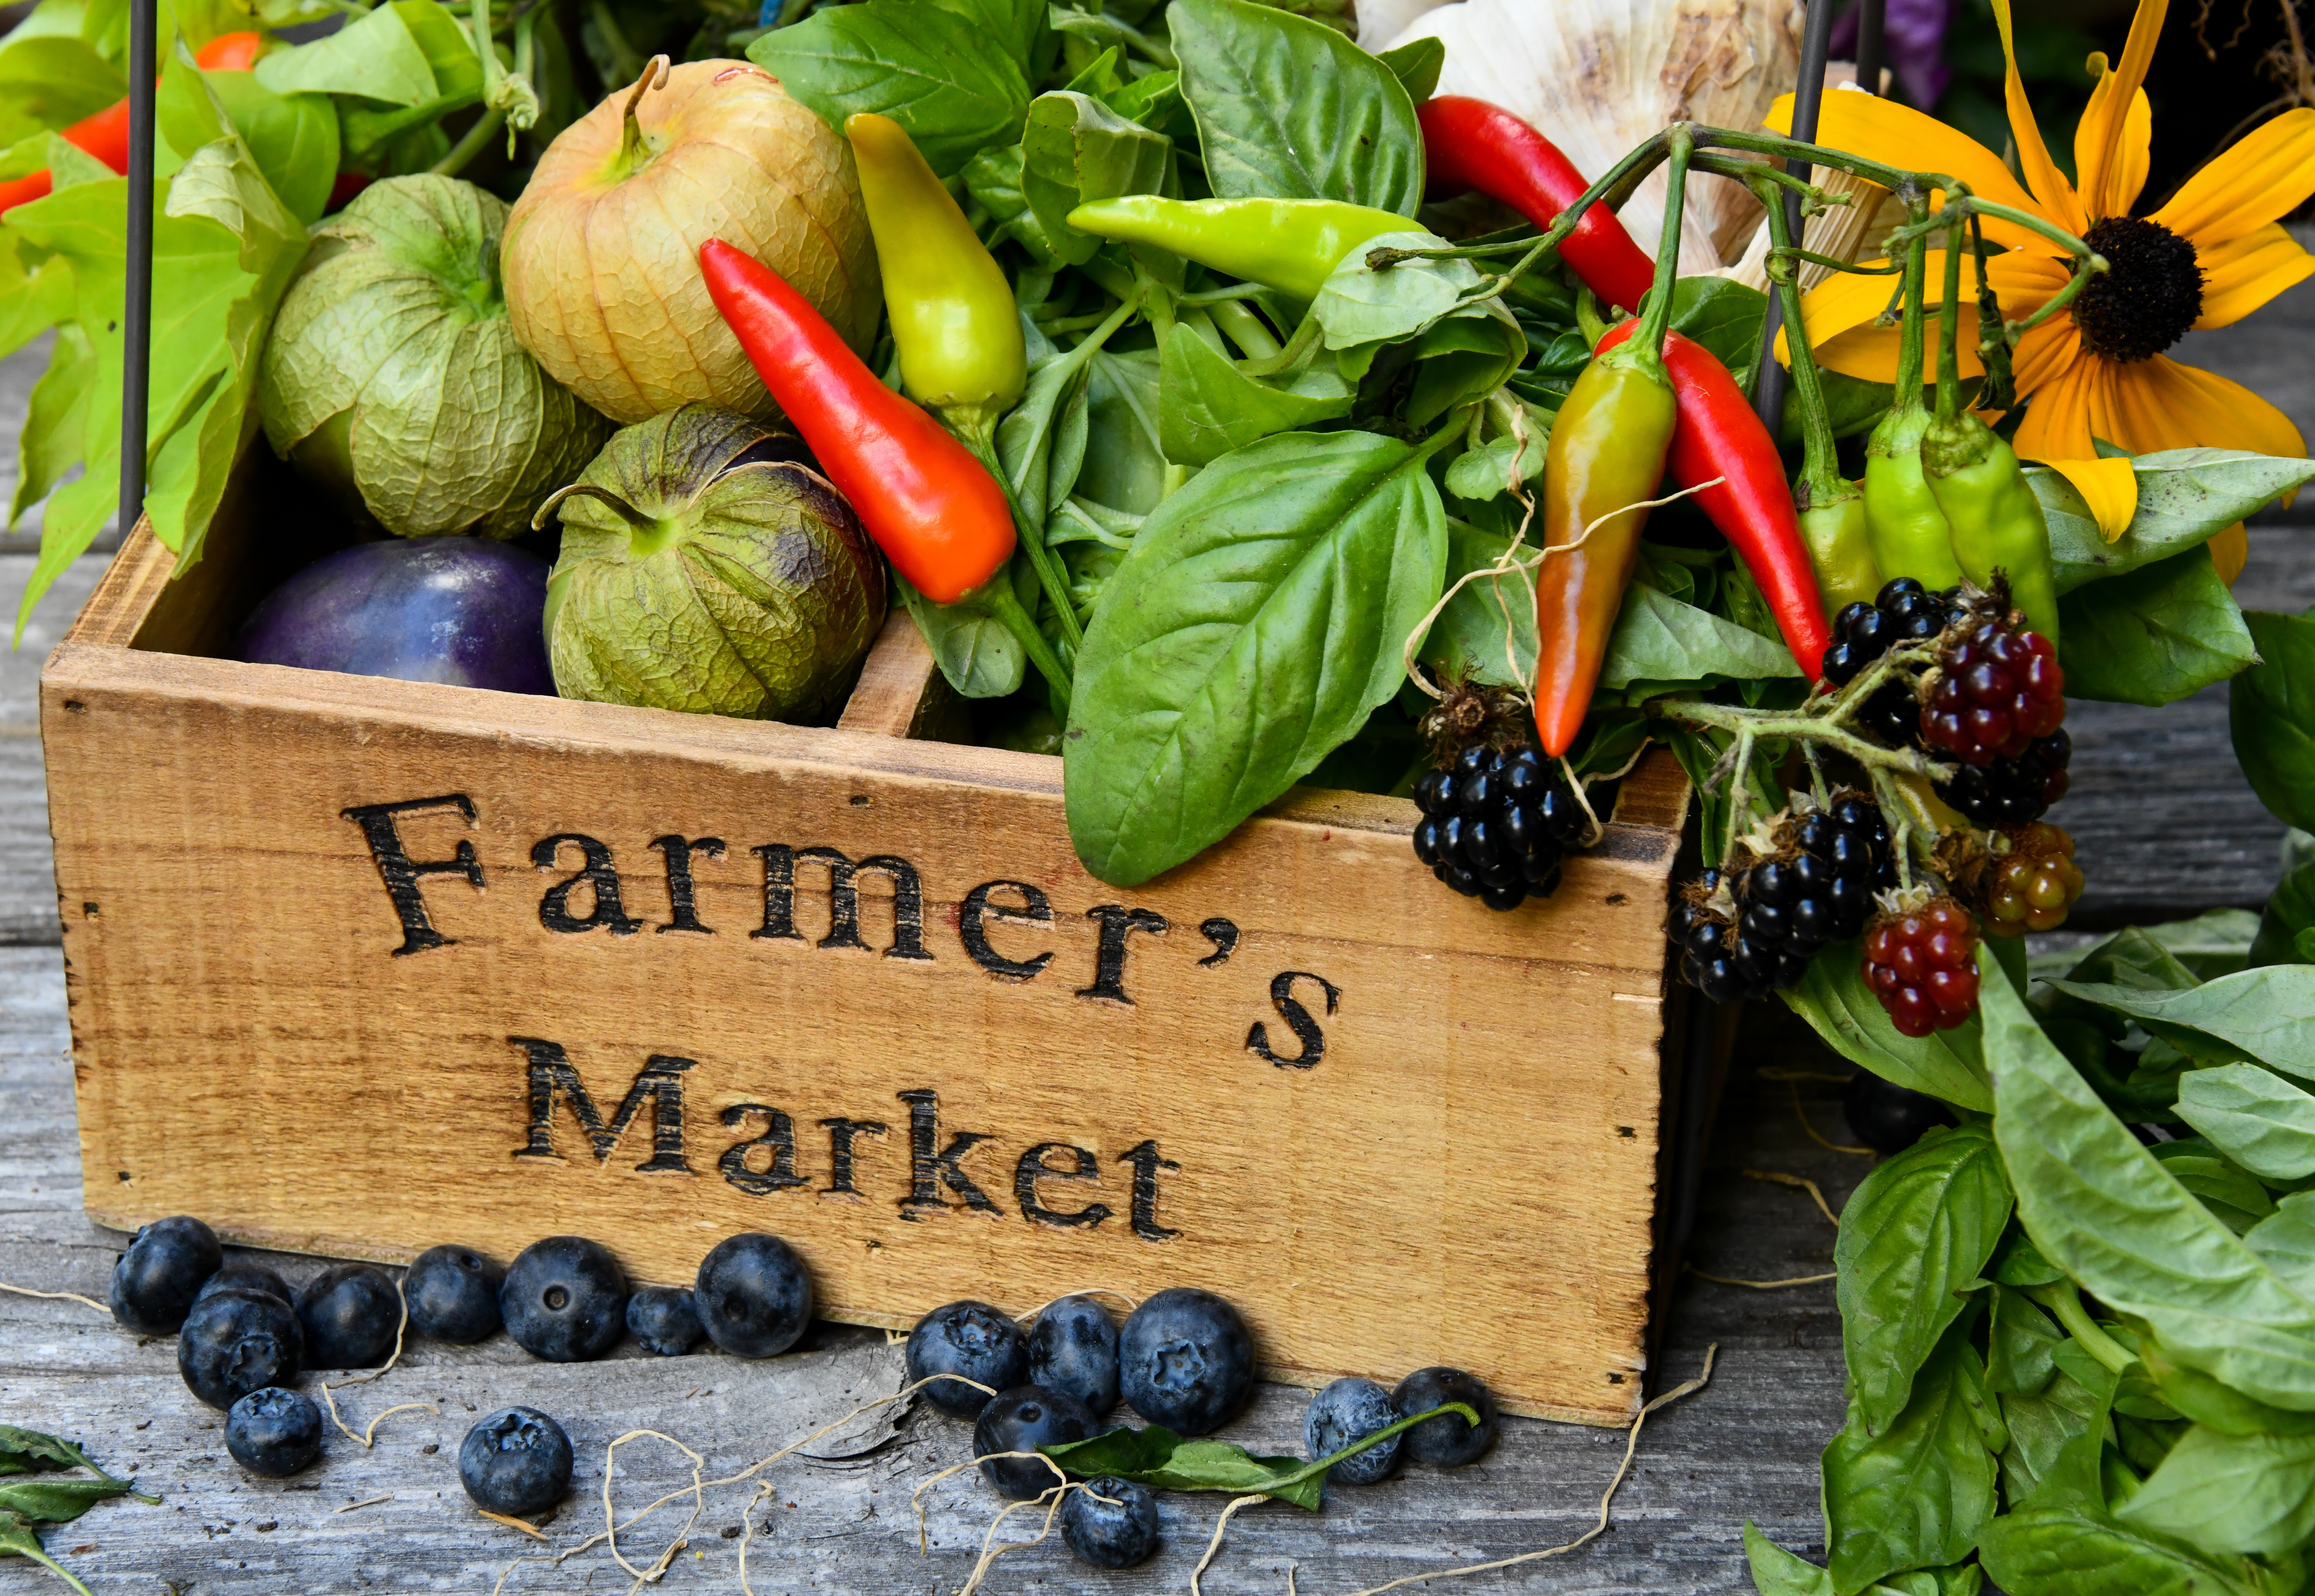 Farmers markets are a great way to make up for food shortages in the garden